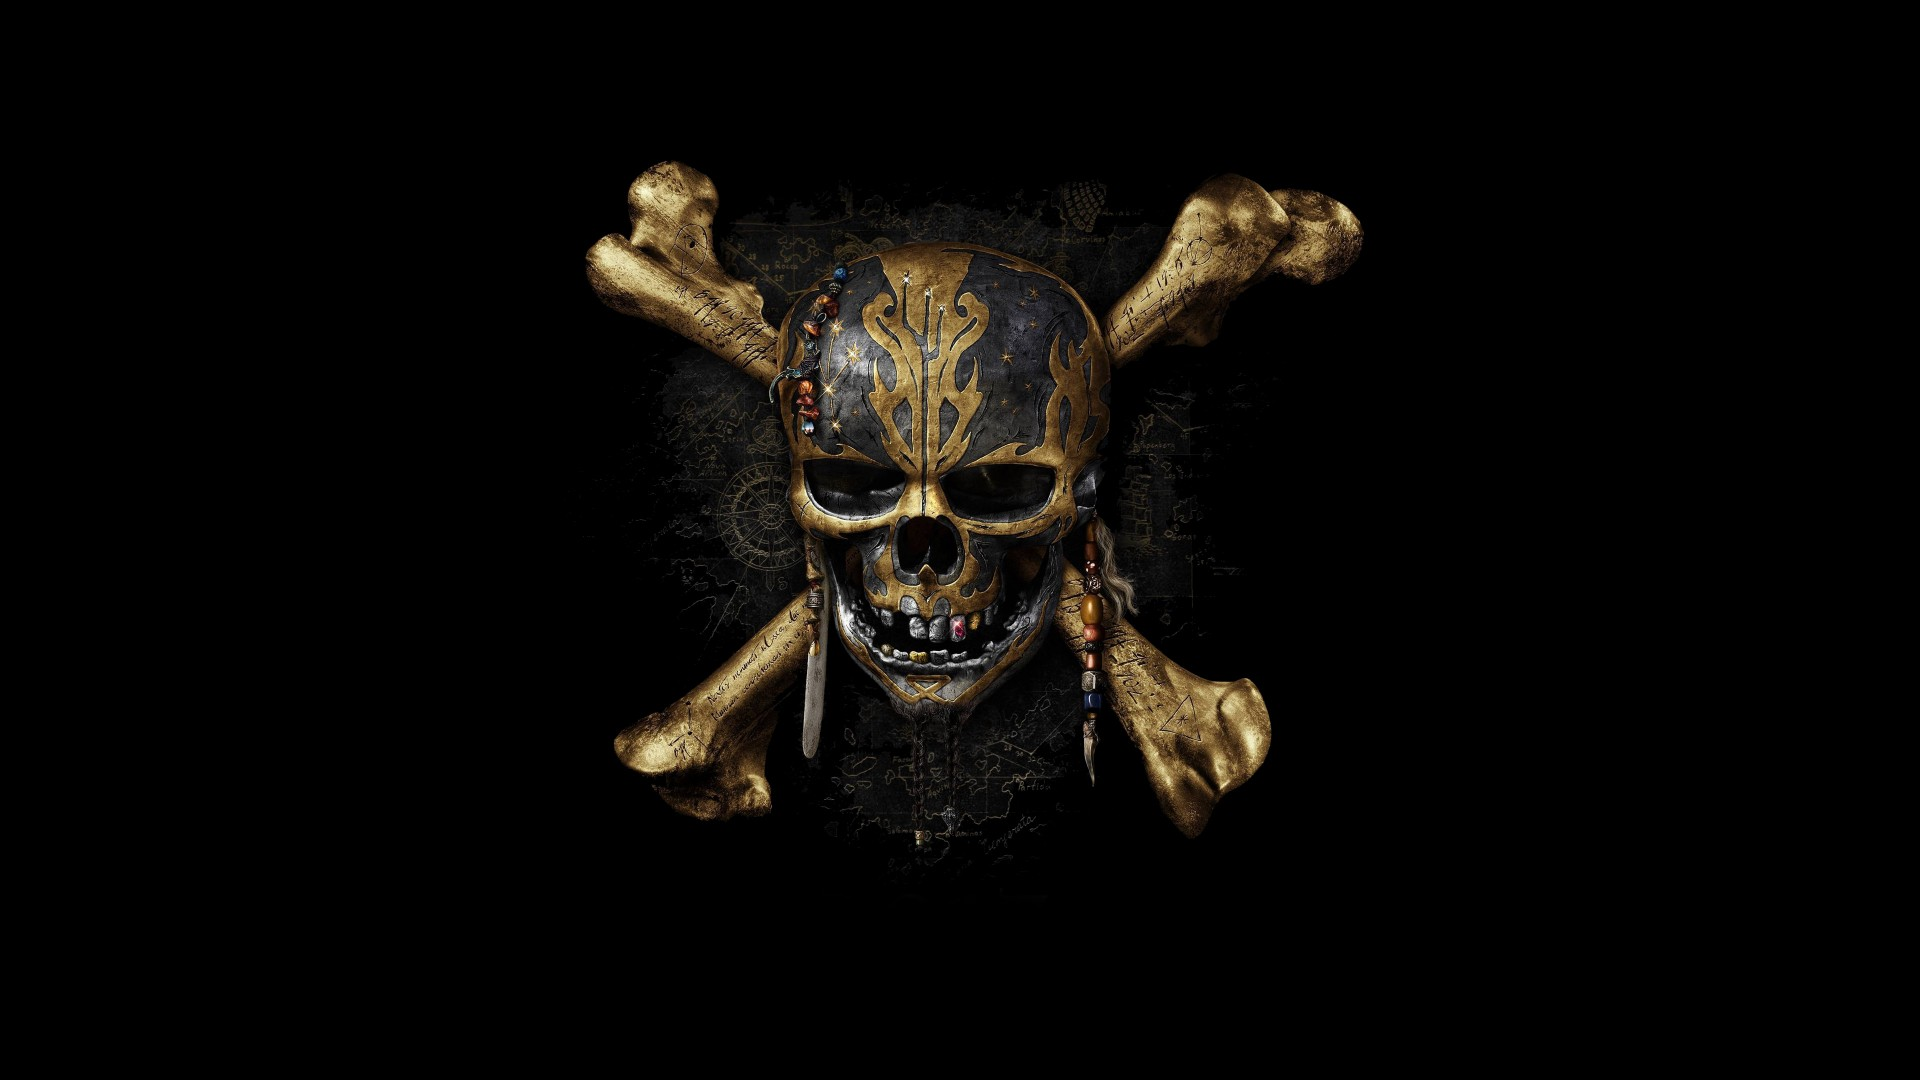 Ultra Hd Desktop Wallpapers Pirates Of The Caribbean Dead Men Tell No Tales 2017 4k